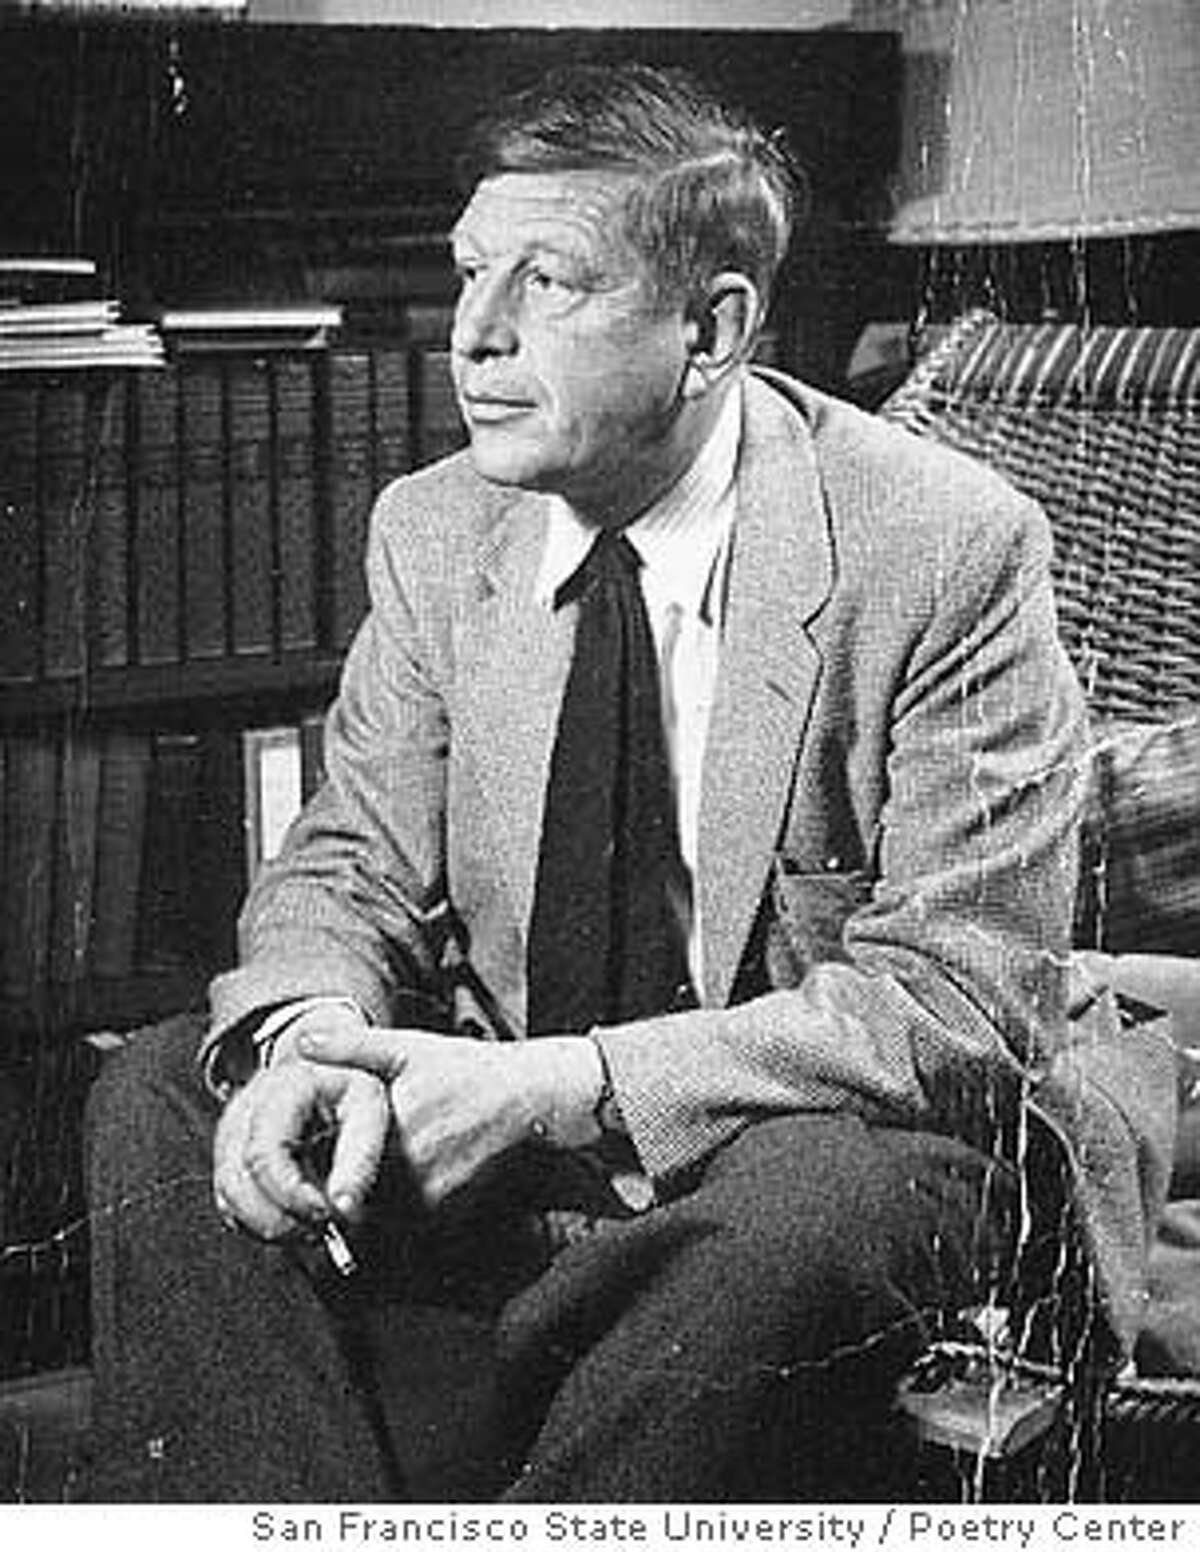 W.H. Auden, at home of Poetry Center founding director Ruth Witt-Diamant in San Francisco.